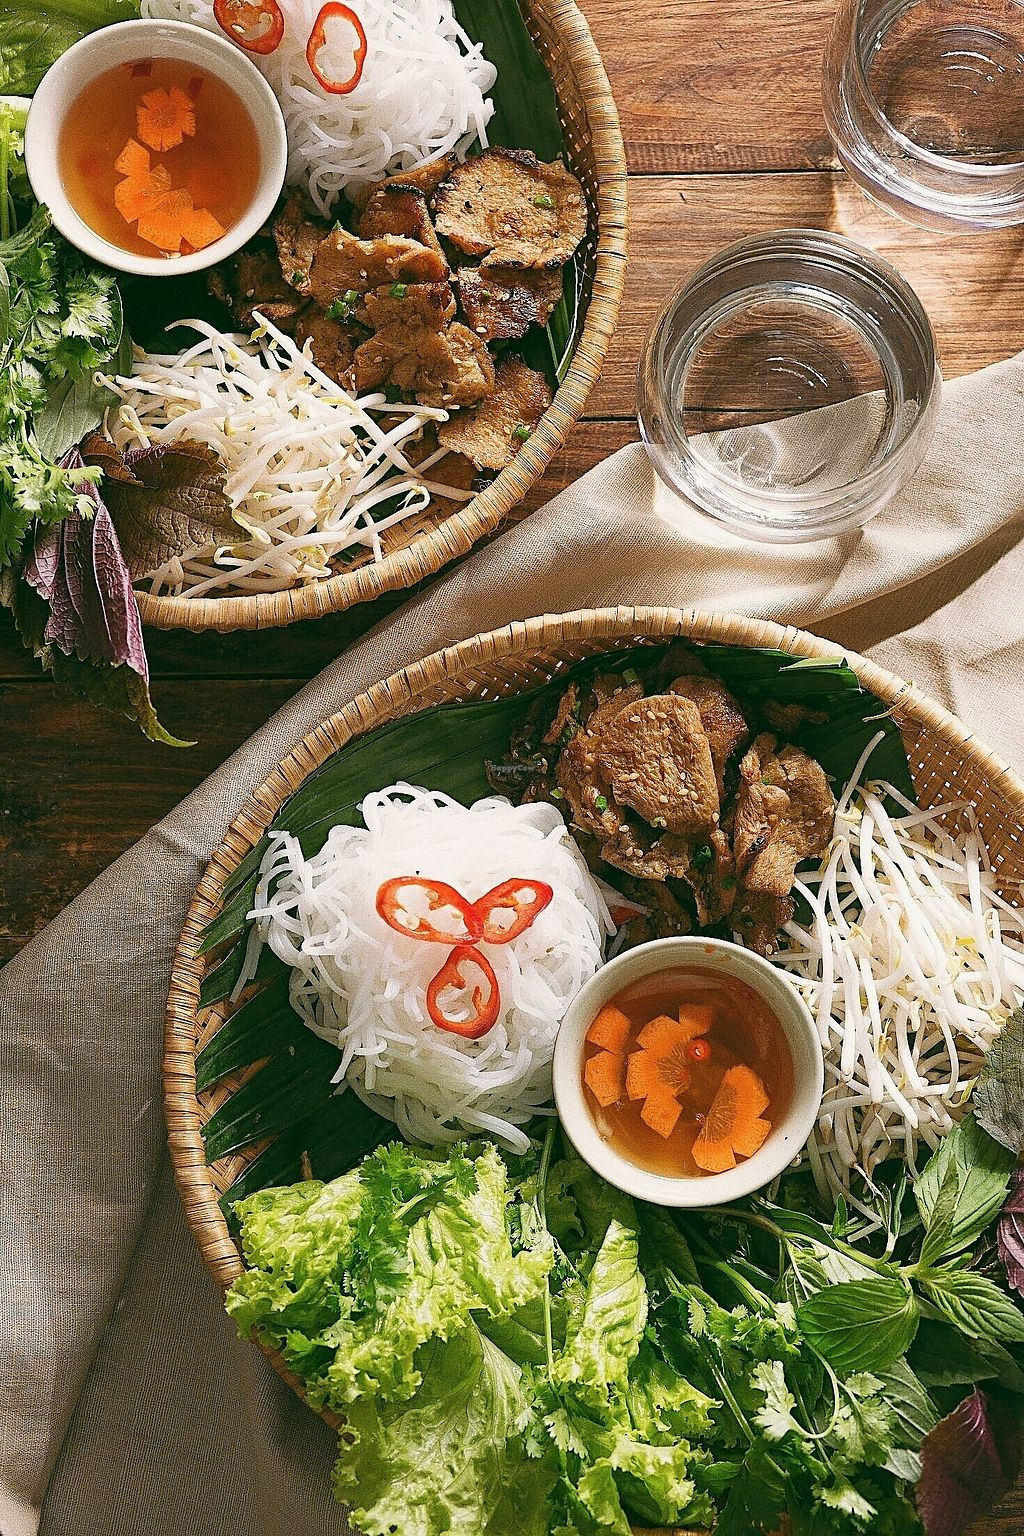 """Photo of Vegan Kitchen  by <a href=""""/members/profile/KhanhAnitya"""">KhanhAnitya</a> <br/>Vermicelli with vegan grilled meat, fresh vegetables and herbs <br/> January 1, 2018  - <a href='/contact/abuse/image/91953/341579'>Report</a>"""